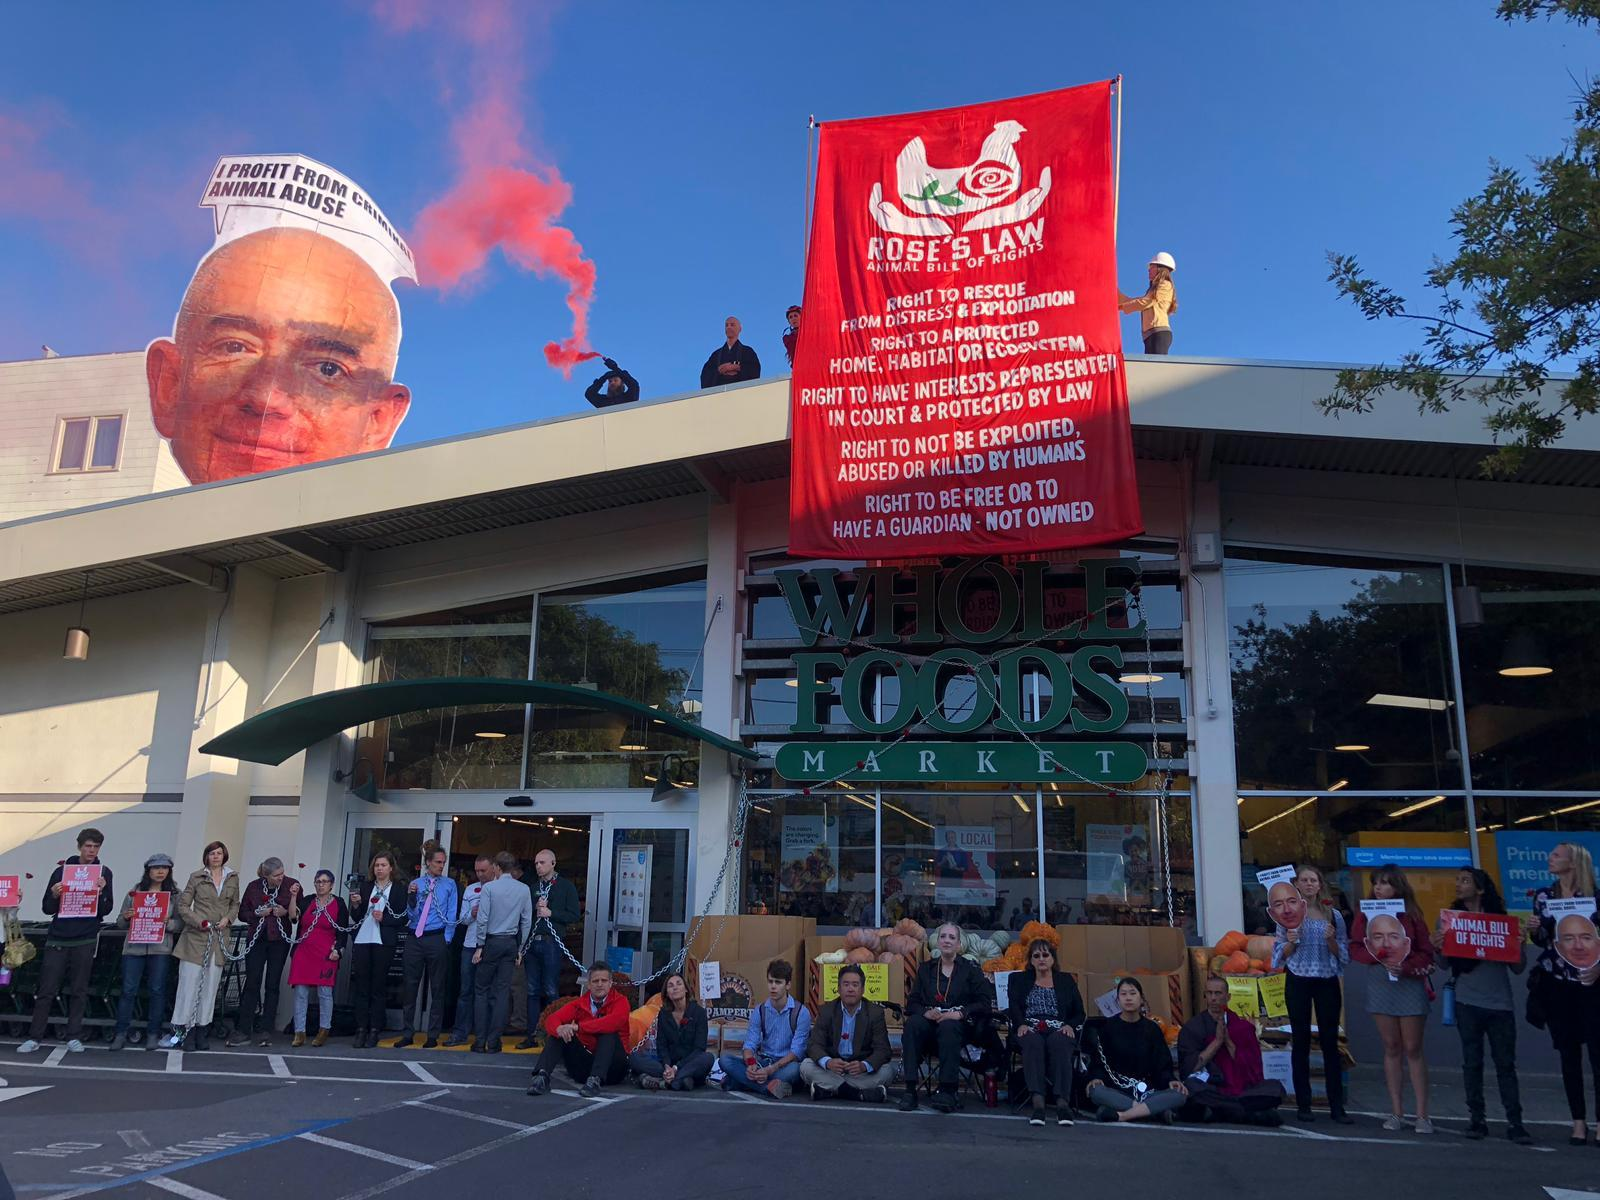 Protestors blocked a Whole Foods location in San Francisco on Monday